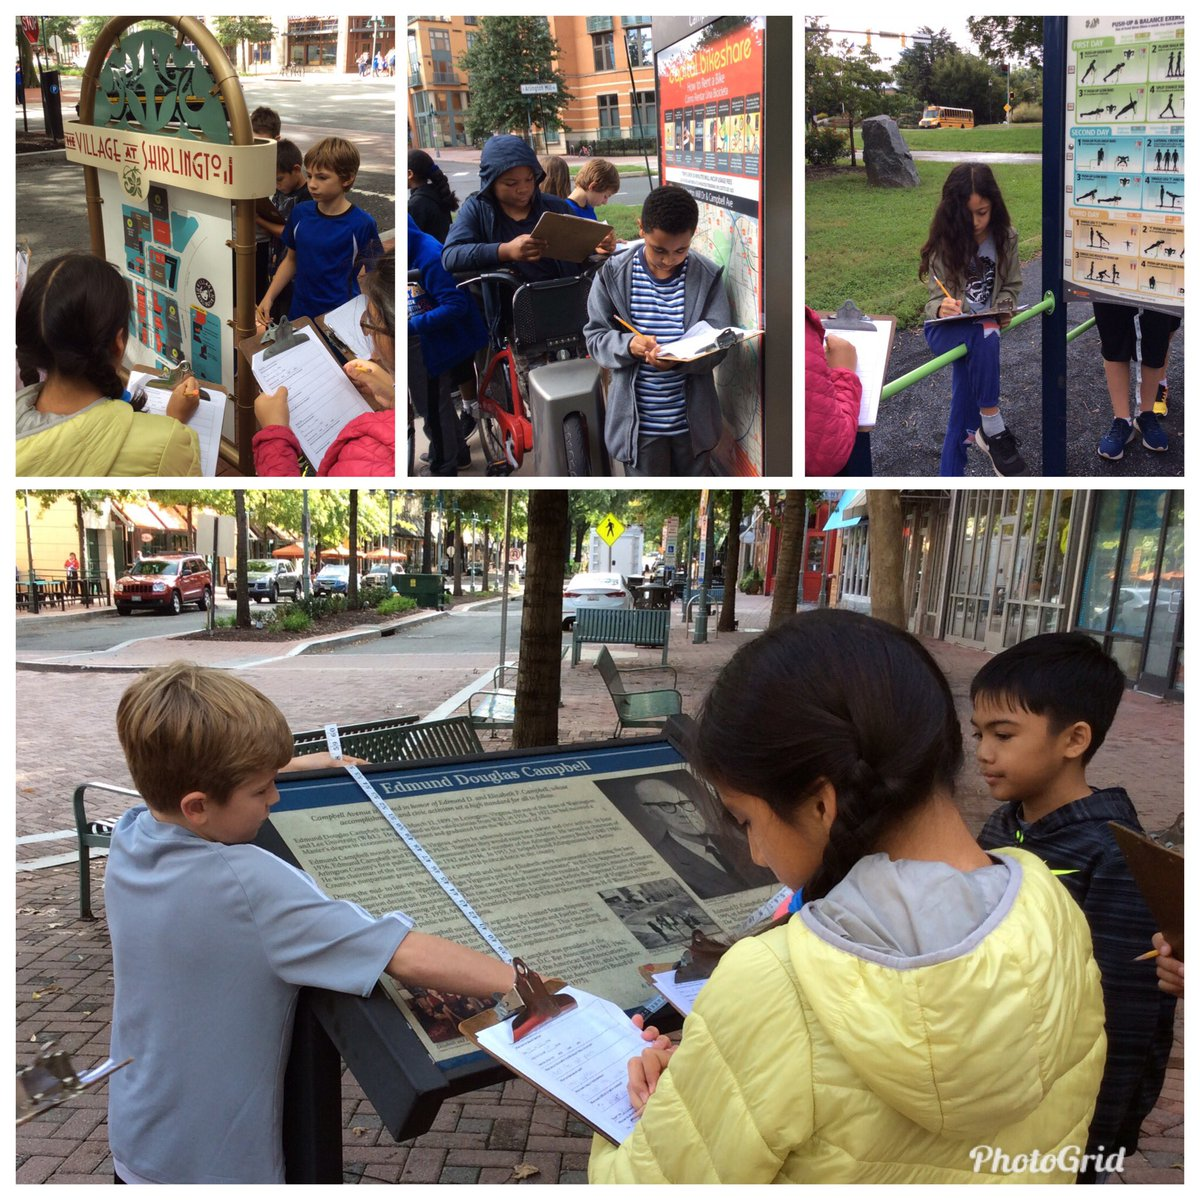 During our fieldwork in Shirlington, 5th graders <a target='_blank' href='http://twitter.com/CampbellAPS'>@CampbellAPS</a> evaluated placards, looking at their dimensions, purpose, and text features so they will become experts when deciding how to display information in our outdoor classroom <a target='_blank' href='http://twitter.com/ELeducation'>@ELeducation</a> <a target='_blank' href='https://t.co/0GSOkii4FL'>https://t.co/0GSOkii4FL</a>